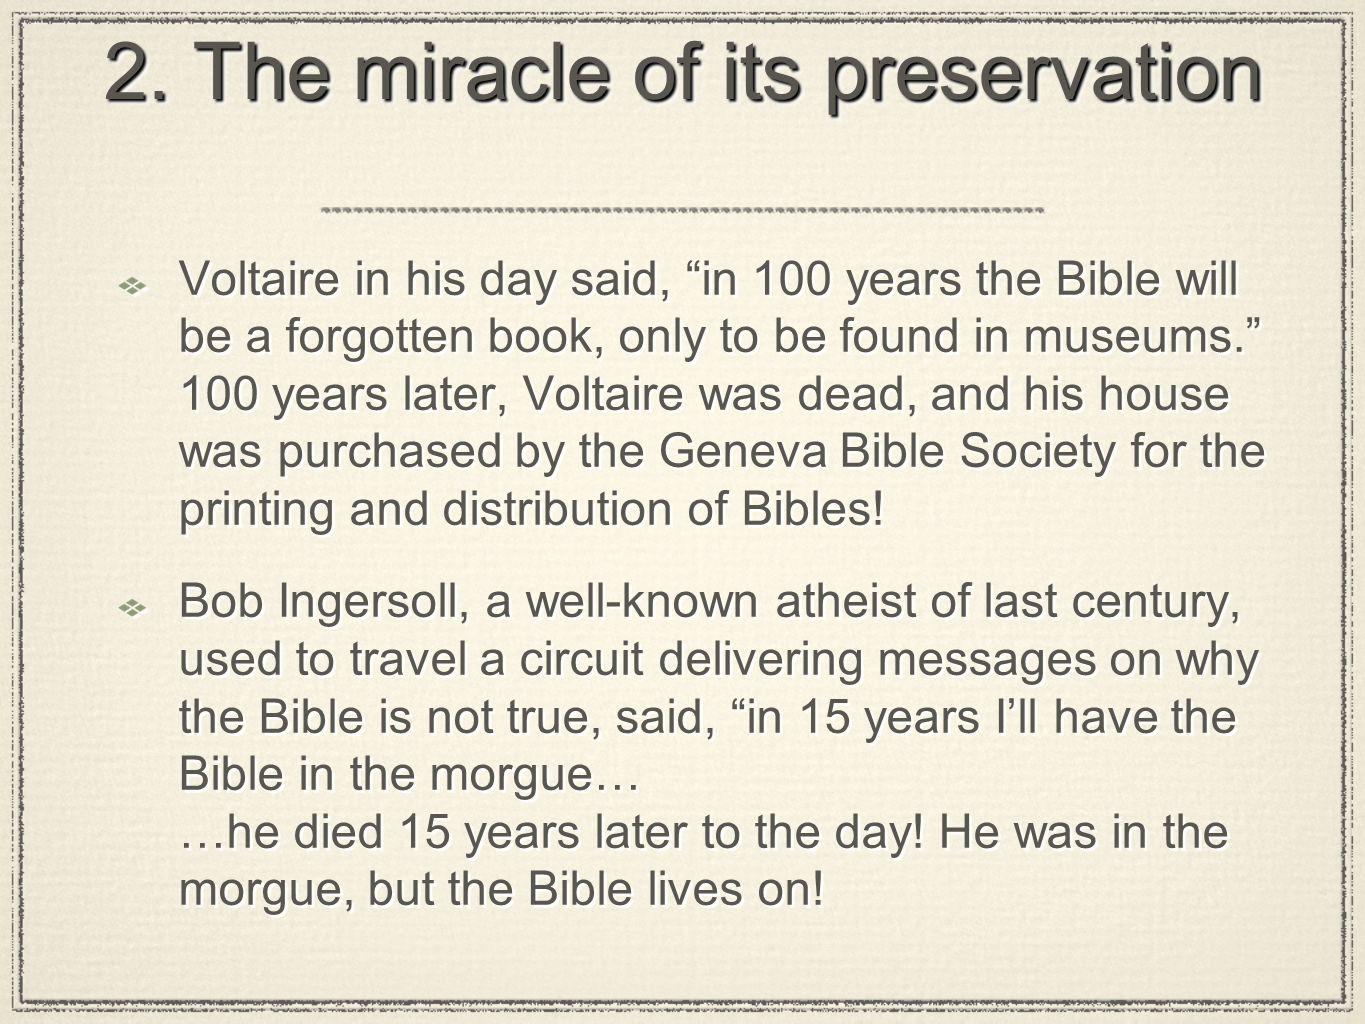 2. The miracle of its preservation